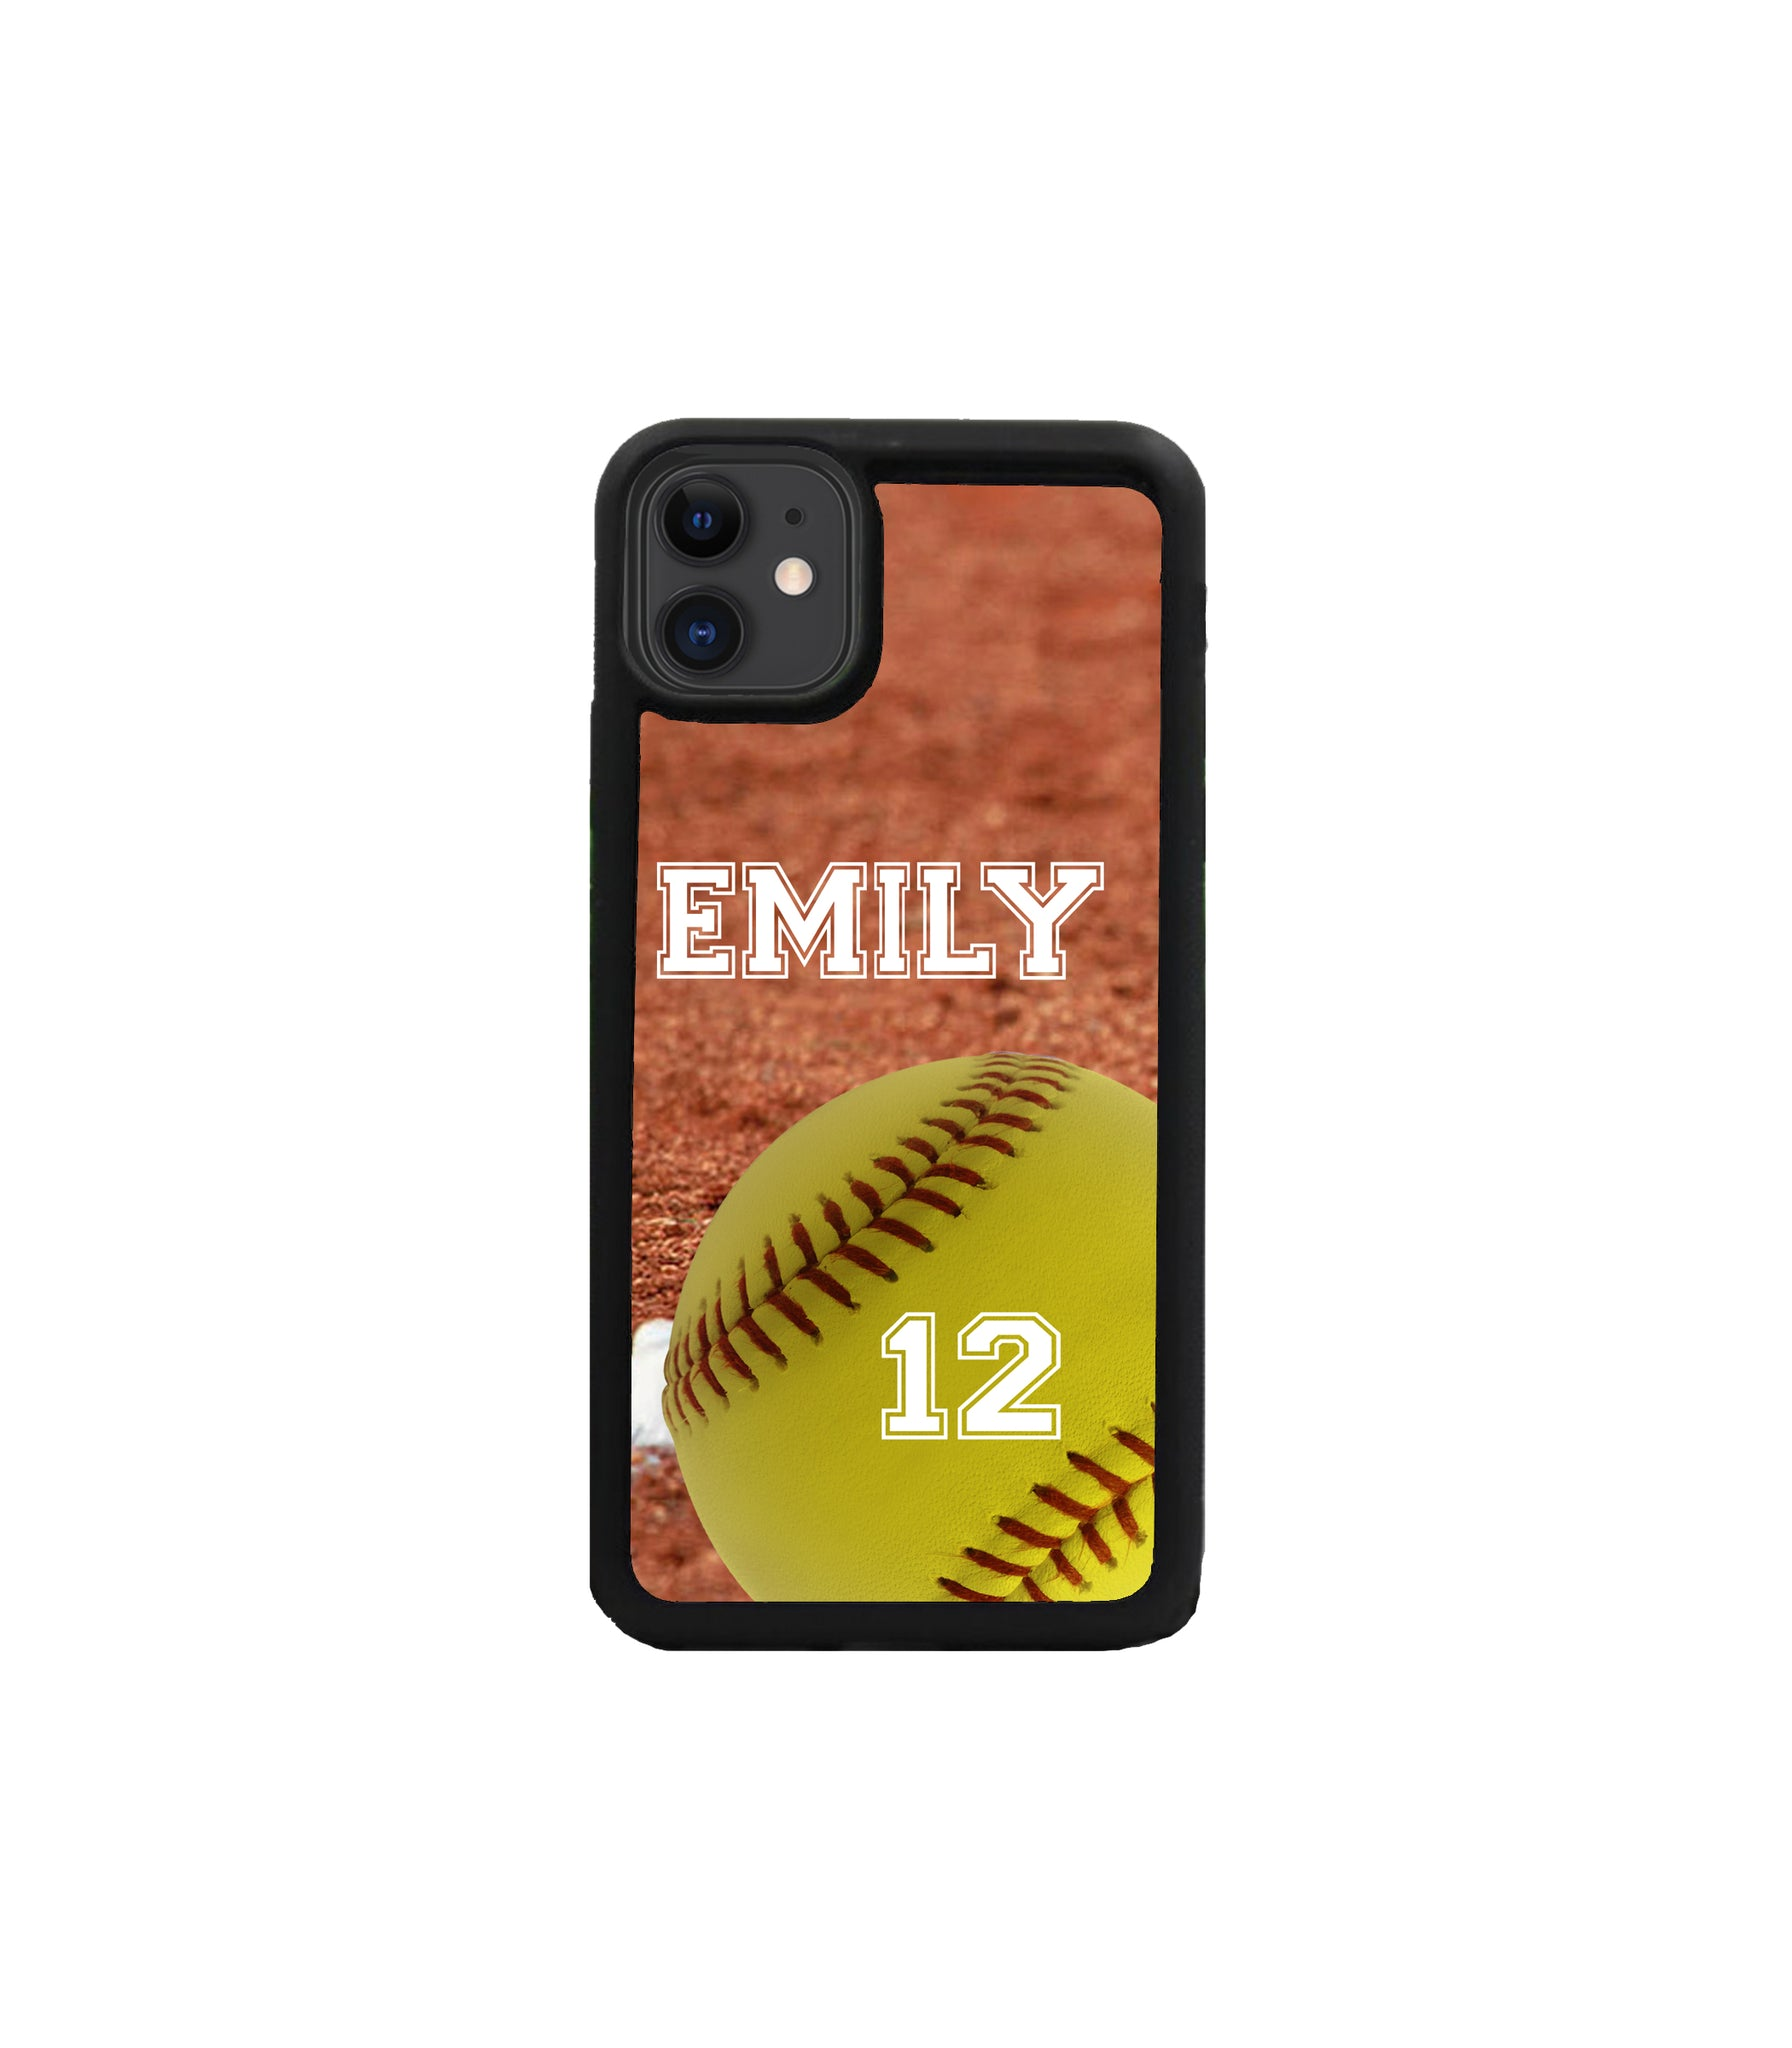 iPhone Case Samsung Galaxy - Personalized Softball Case